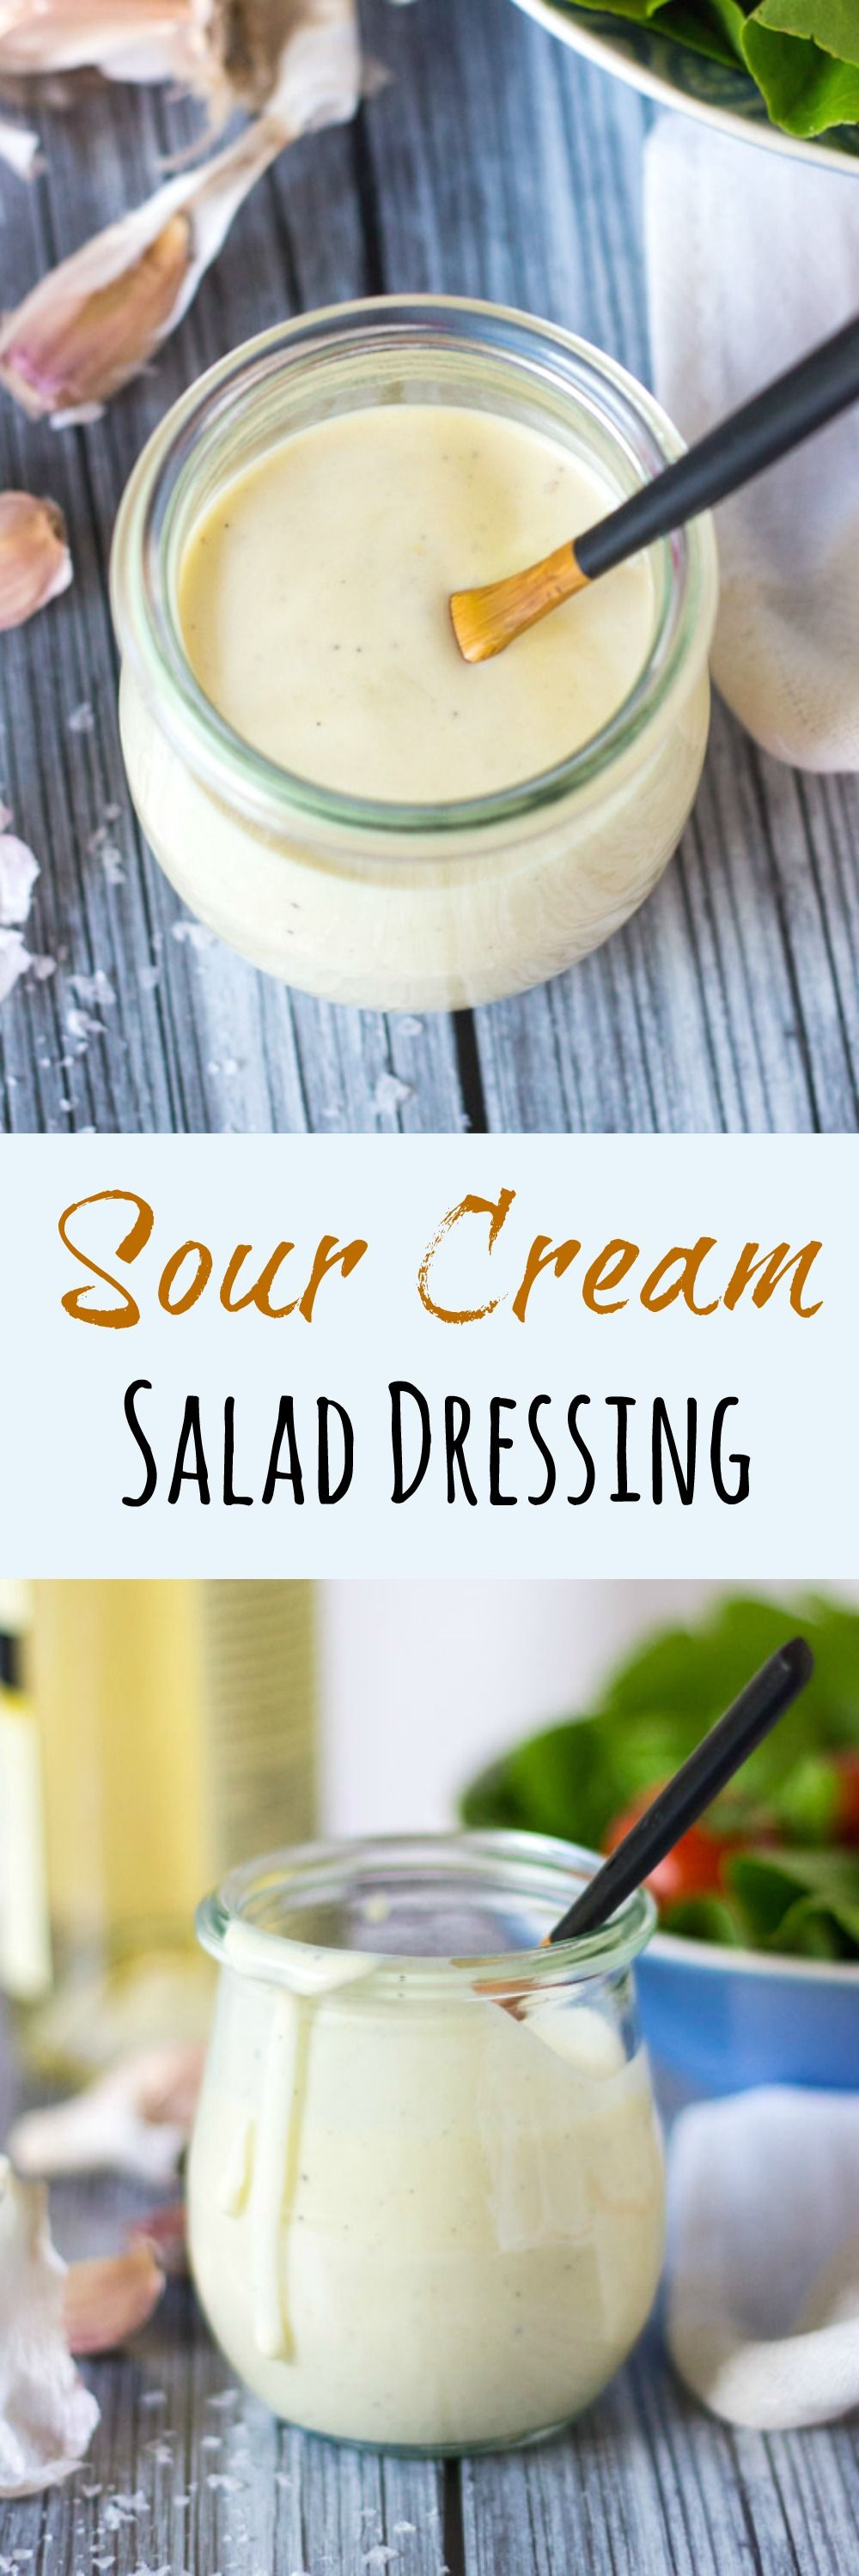 A Quick Easy 5 Minute Sour Cream Salad Dressing Recipe Sour Cream Salad Dressing Keto Salad Dressing Recipes